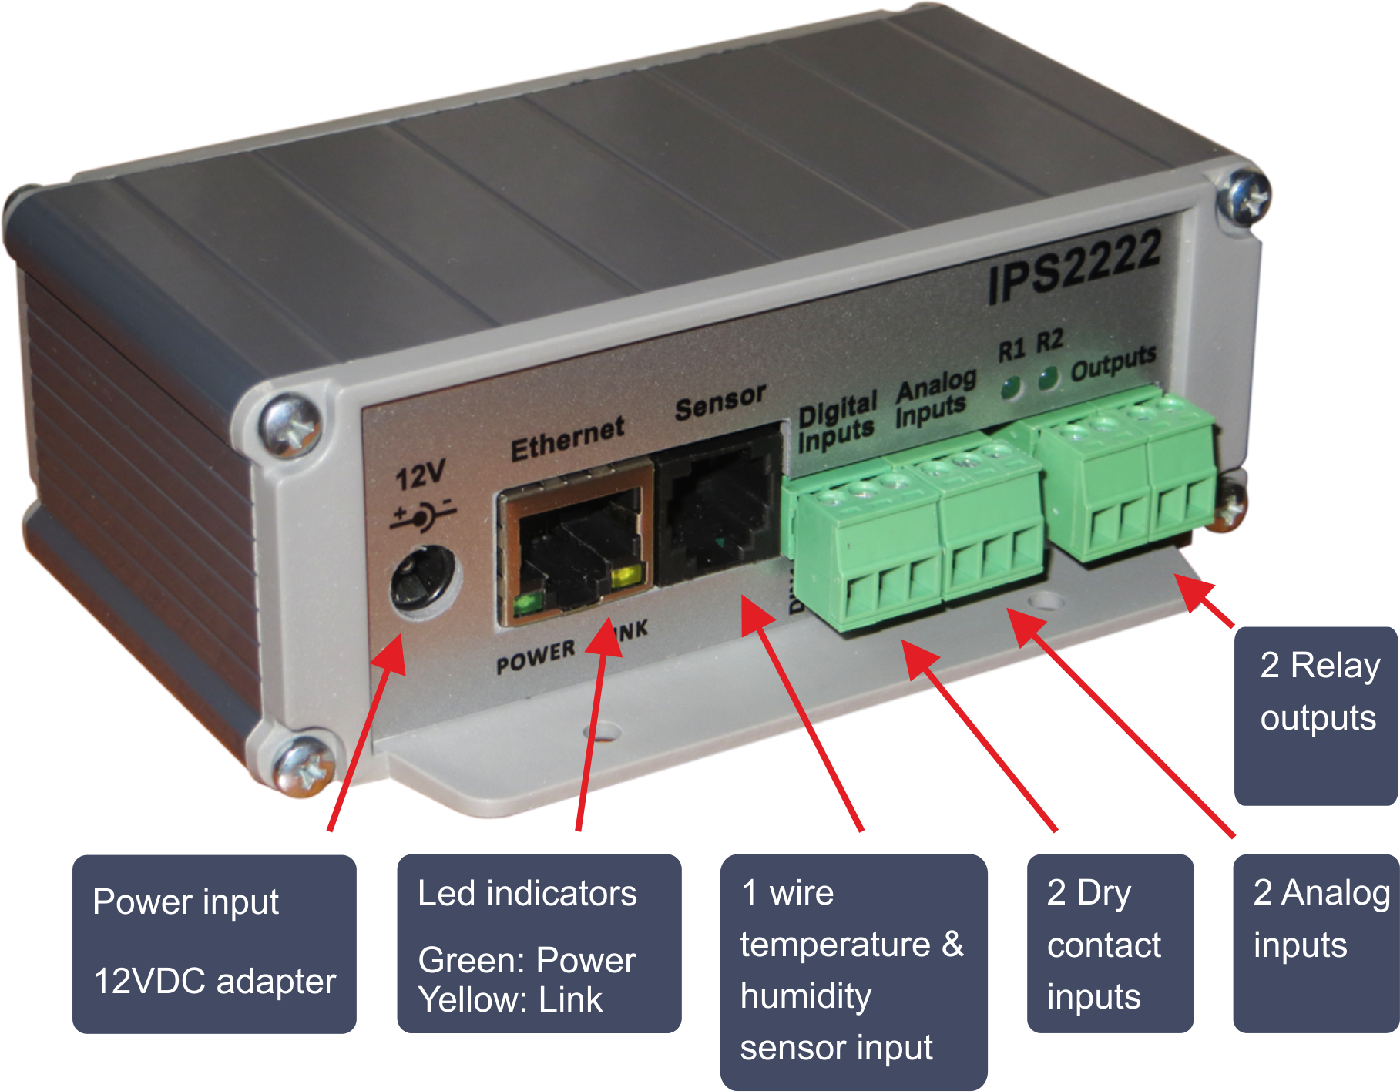 Ethernet Ip Controller Ips2222 Snmp Wiring Diagram Sensor And I O